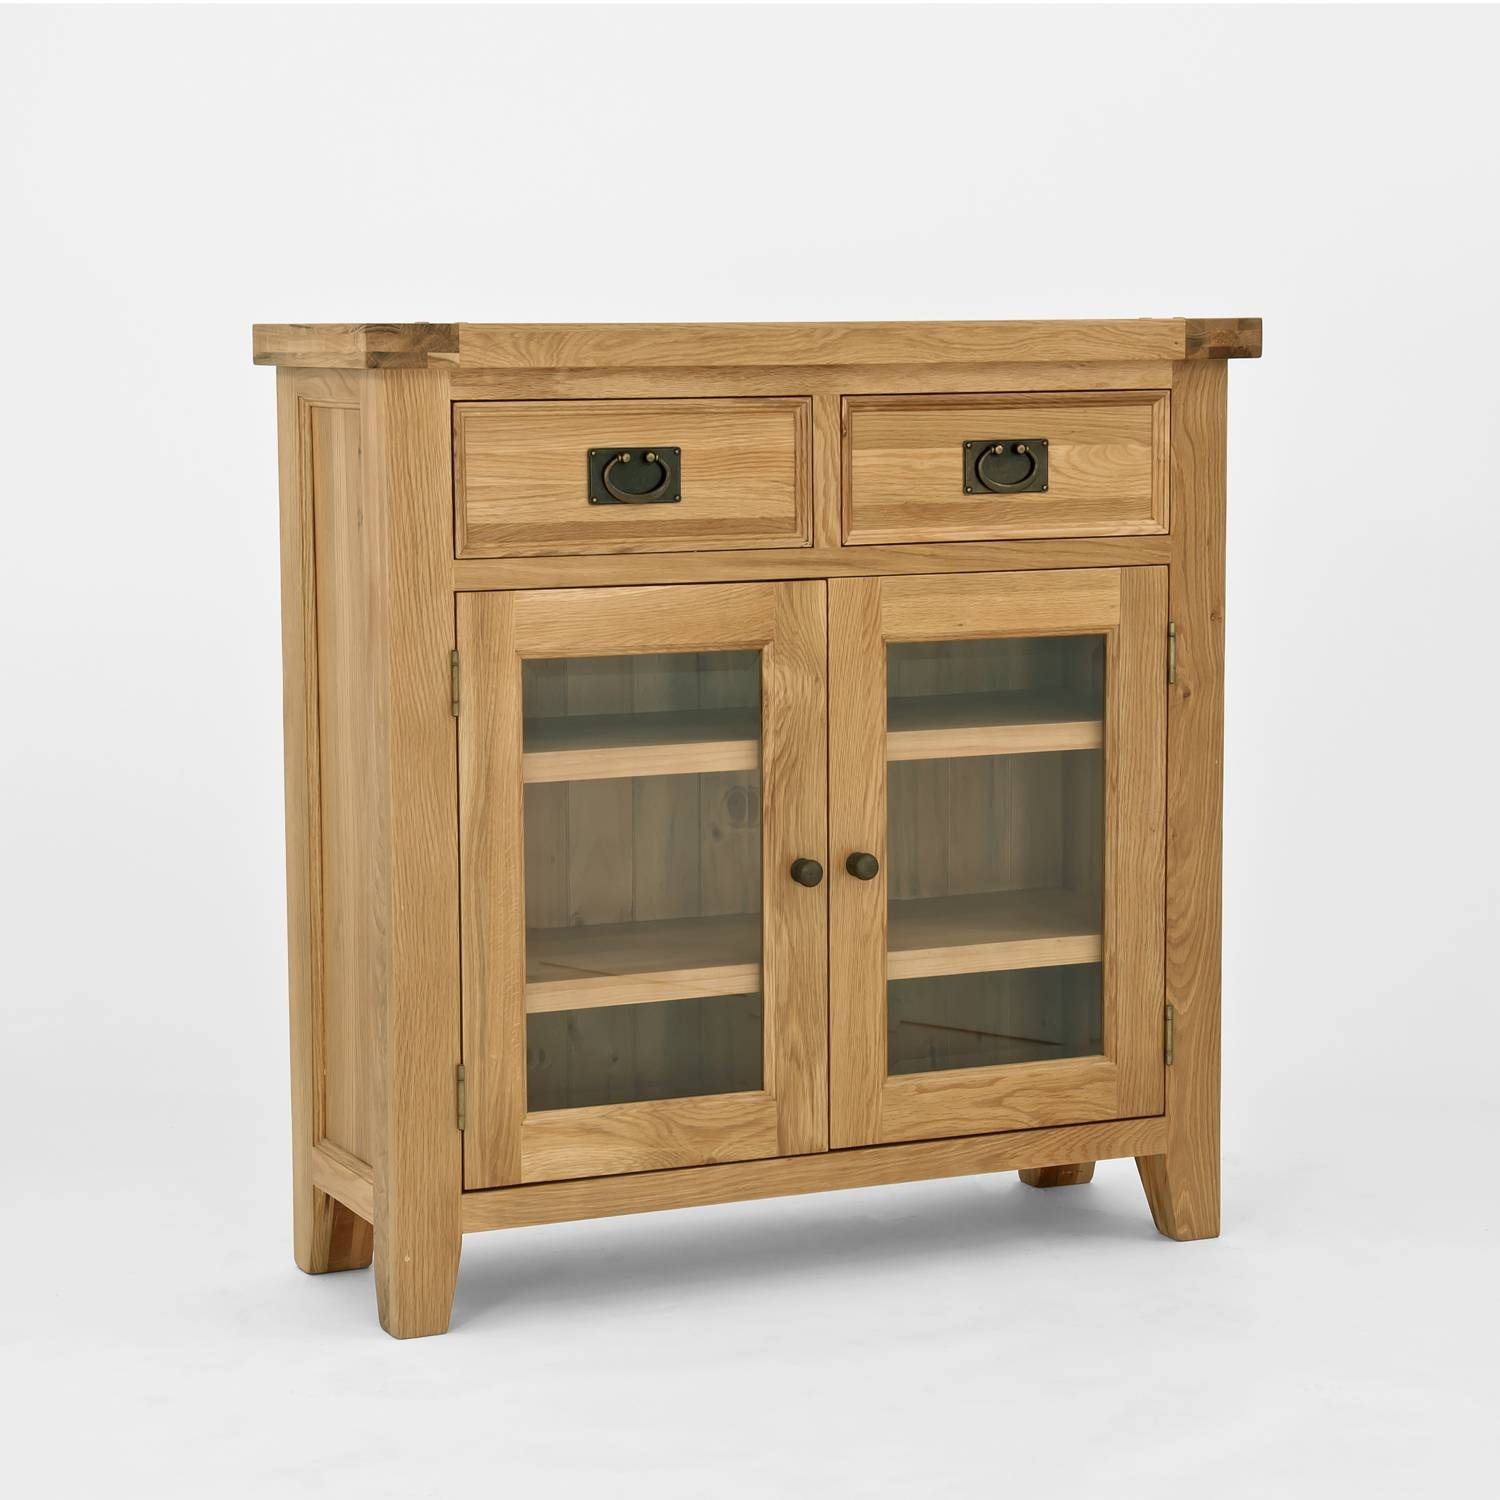 Chiltern Oak Small Sideboard/bookcase With Glass Doors in Small Wooden Sideboards (Image 10 of 30)